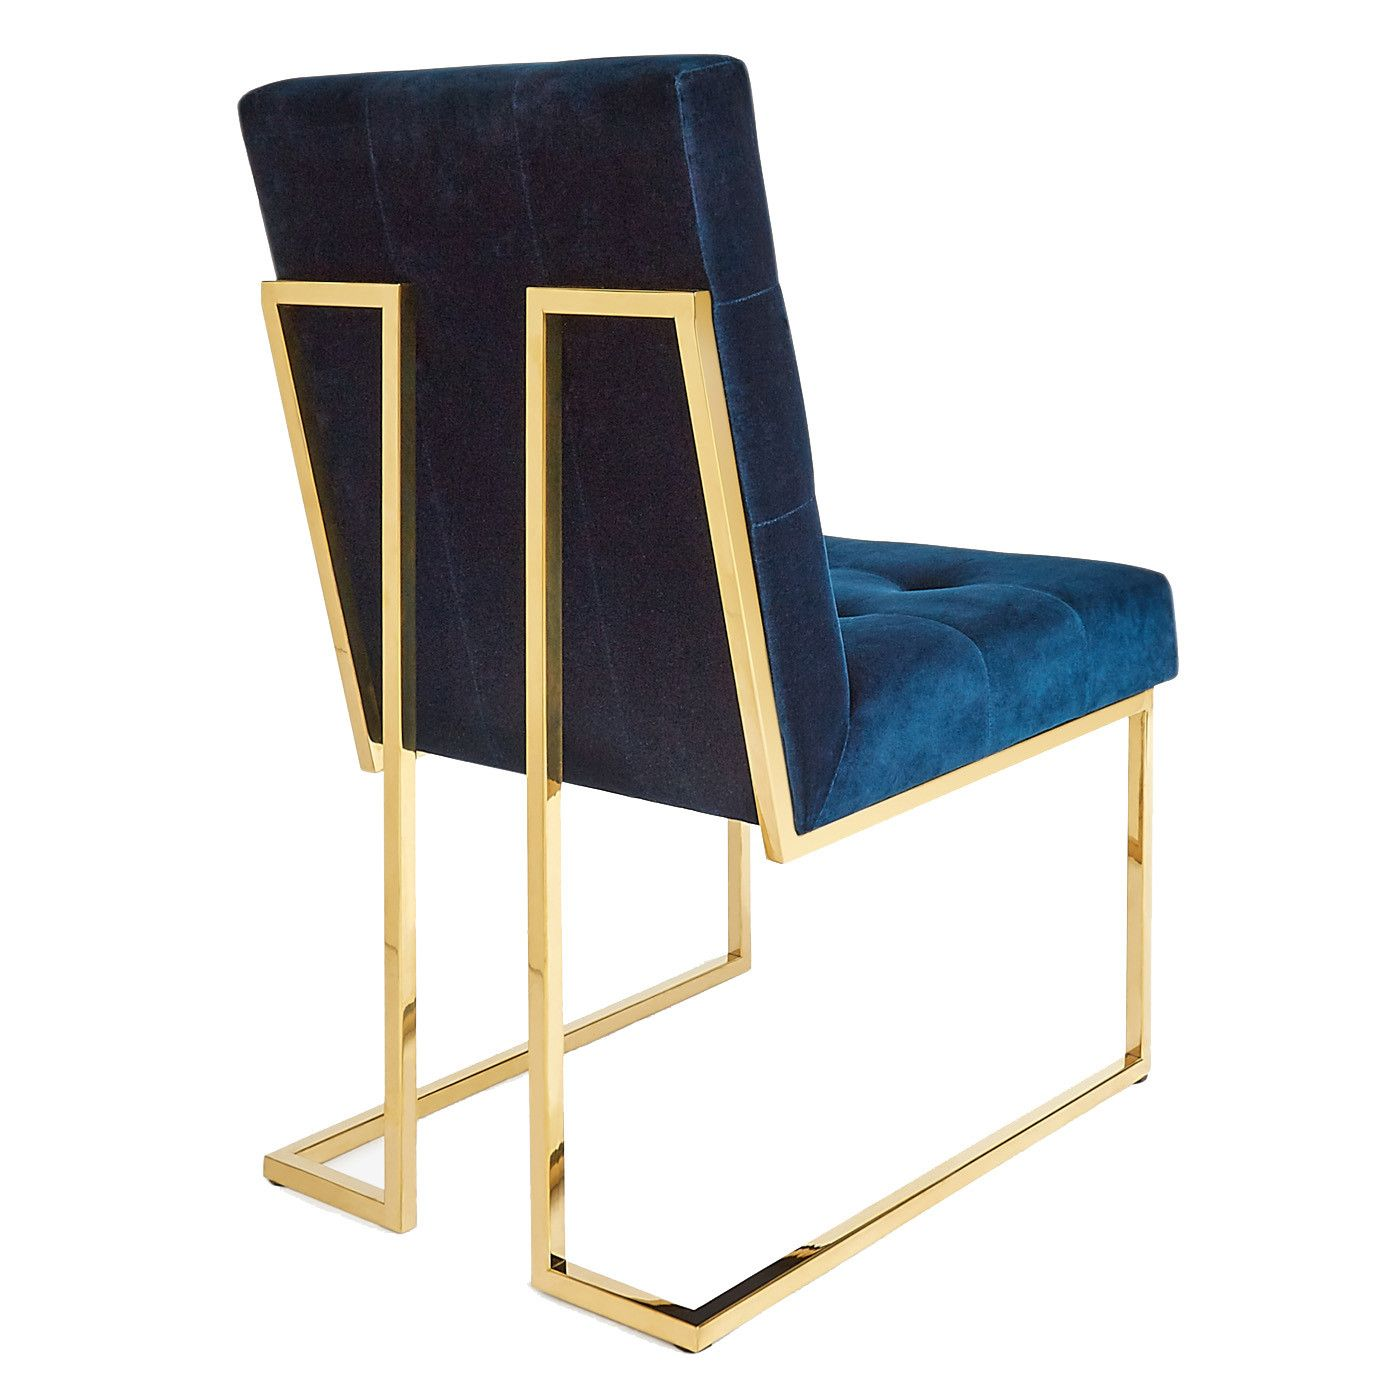 navy velvet dining chair  dining chairs navy and jonathan adler - navy velvet dining chair